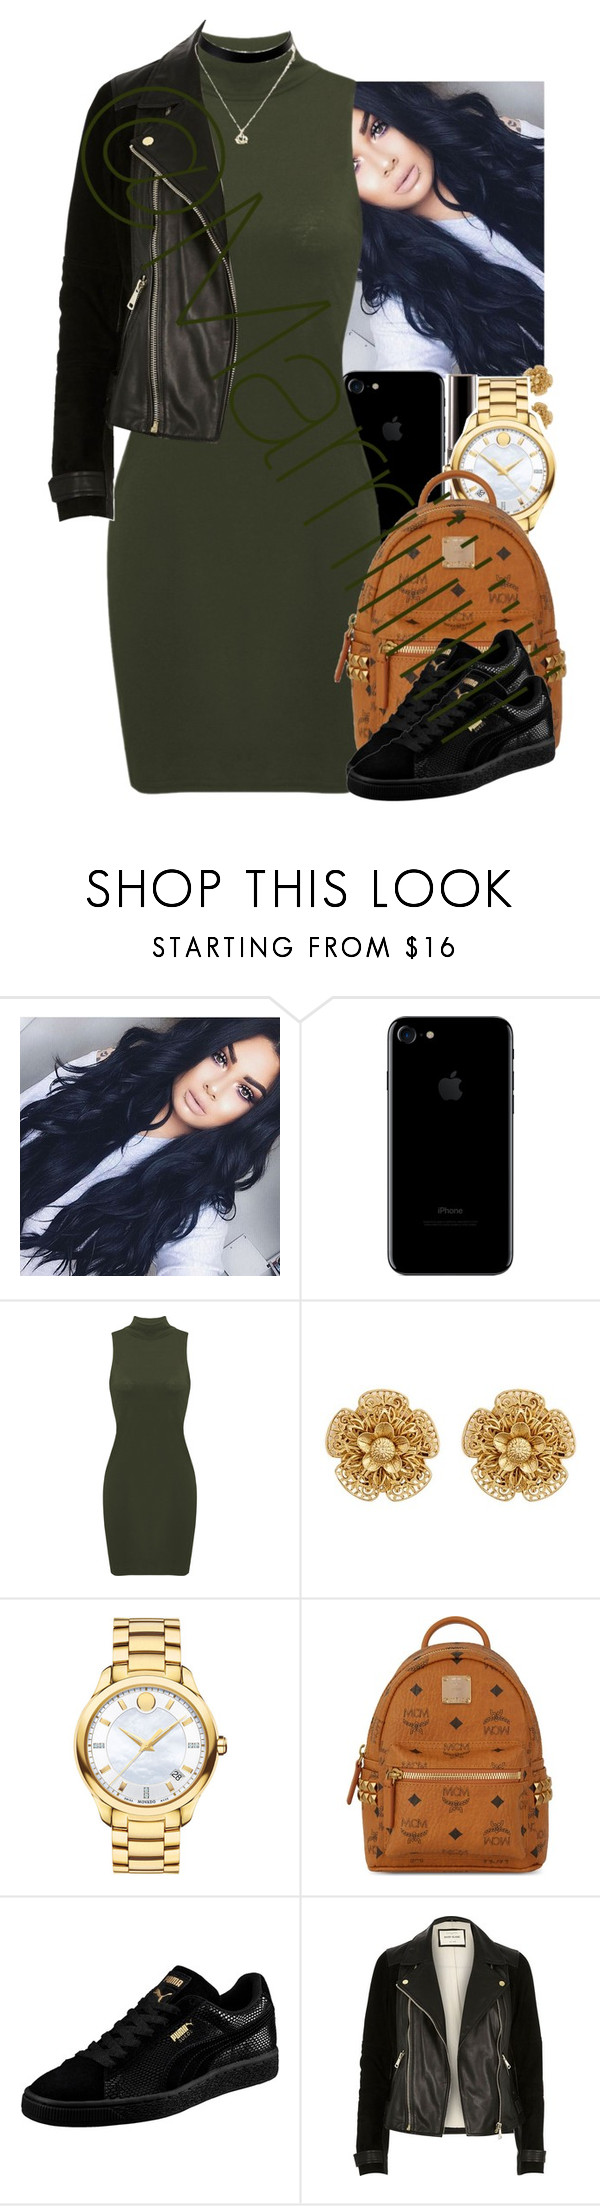 """Fall Green"" by marriiiiiiiii on Polyvore featuring Miriam Haskell, Movado, MCM, Puma and River Island"